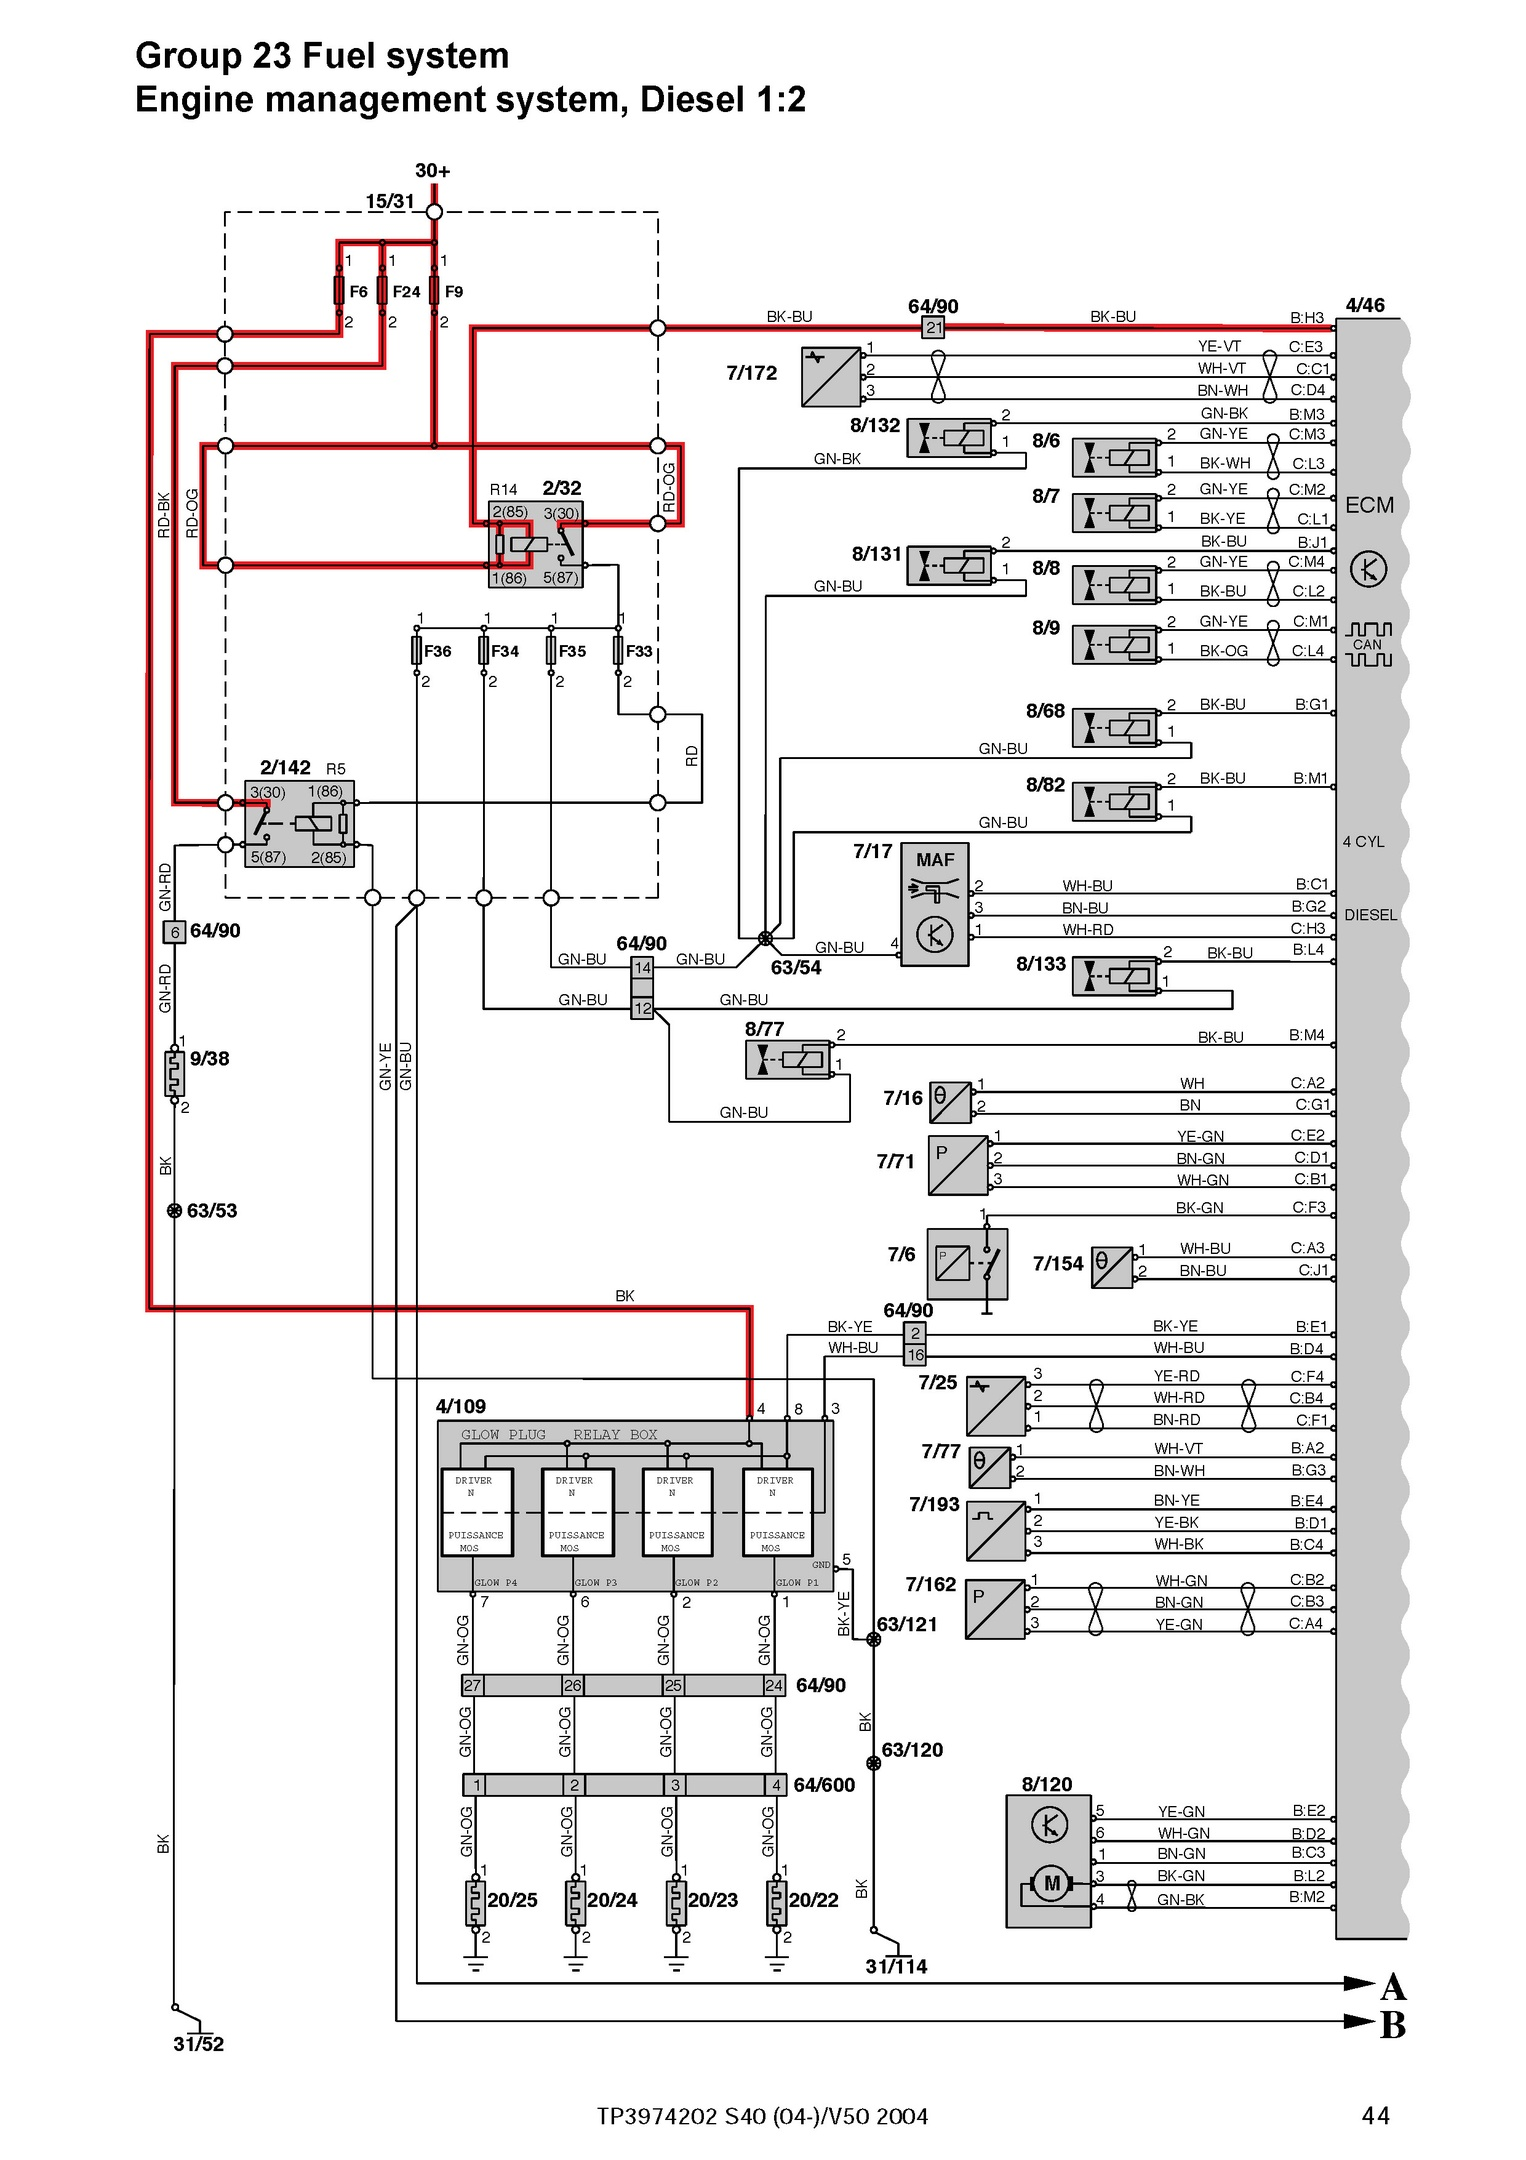 ogo wiring diagram wiring library wiring diagrams for dummies the separate wiring manual for each model contains circuit diagrams of each electrical system, wiring